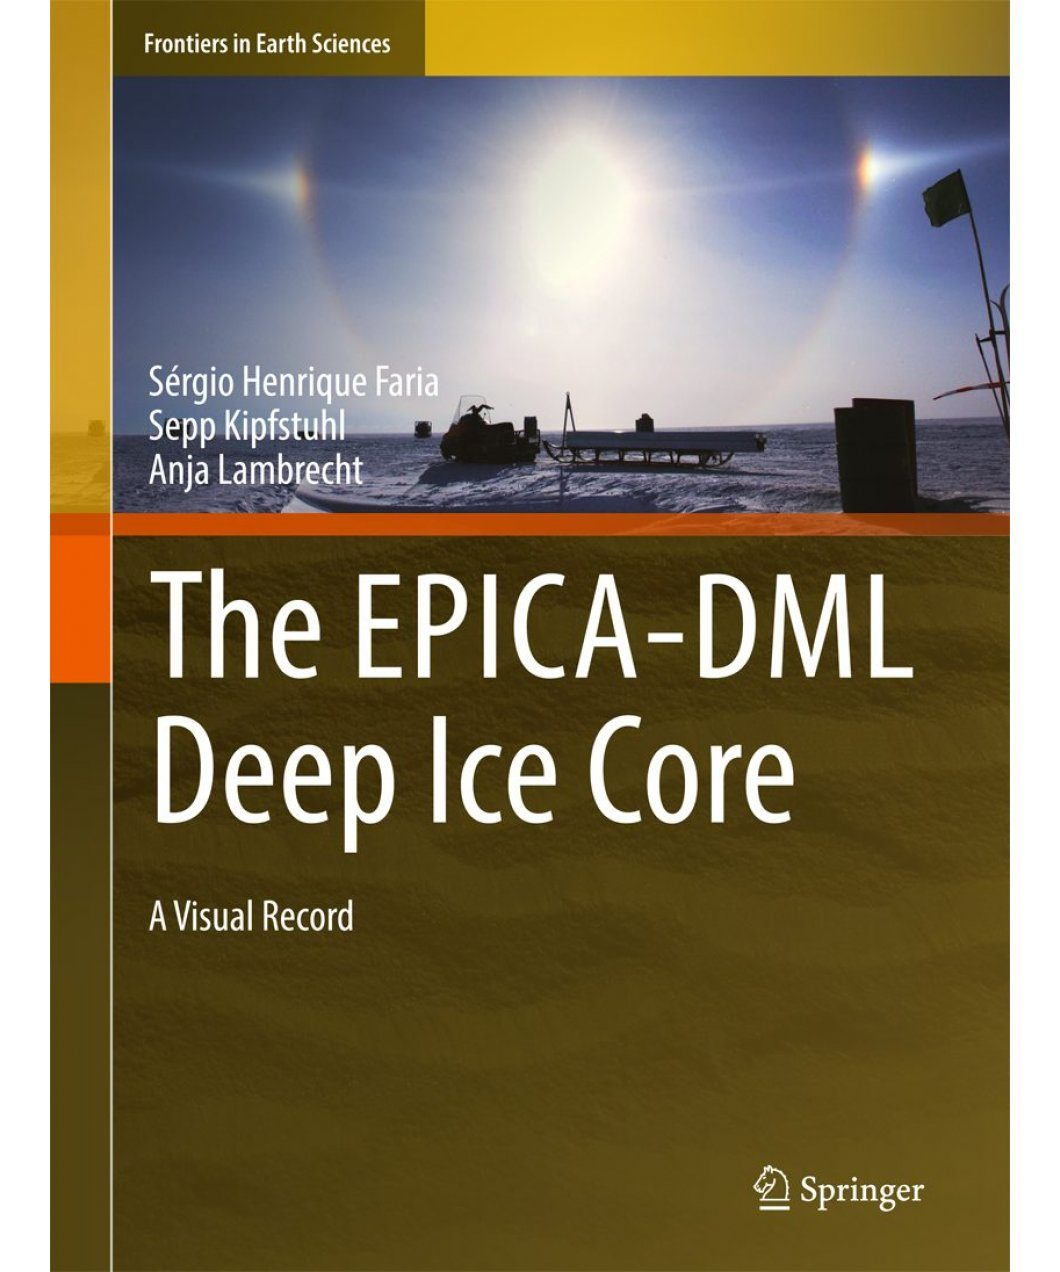 The EPICA-DML Deep Ice Core